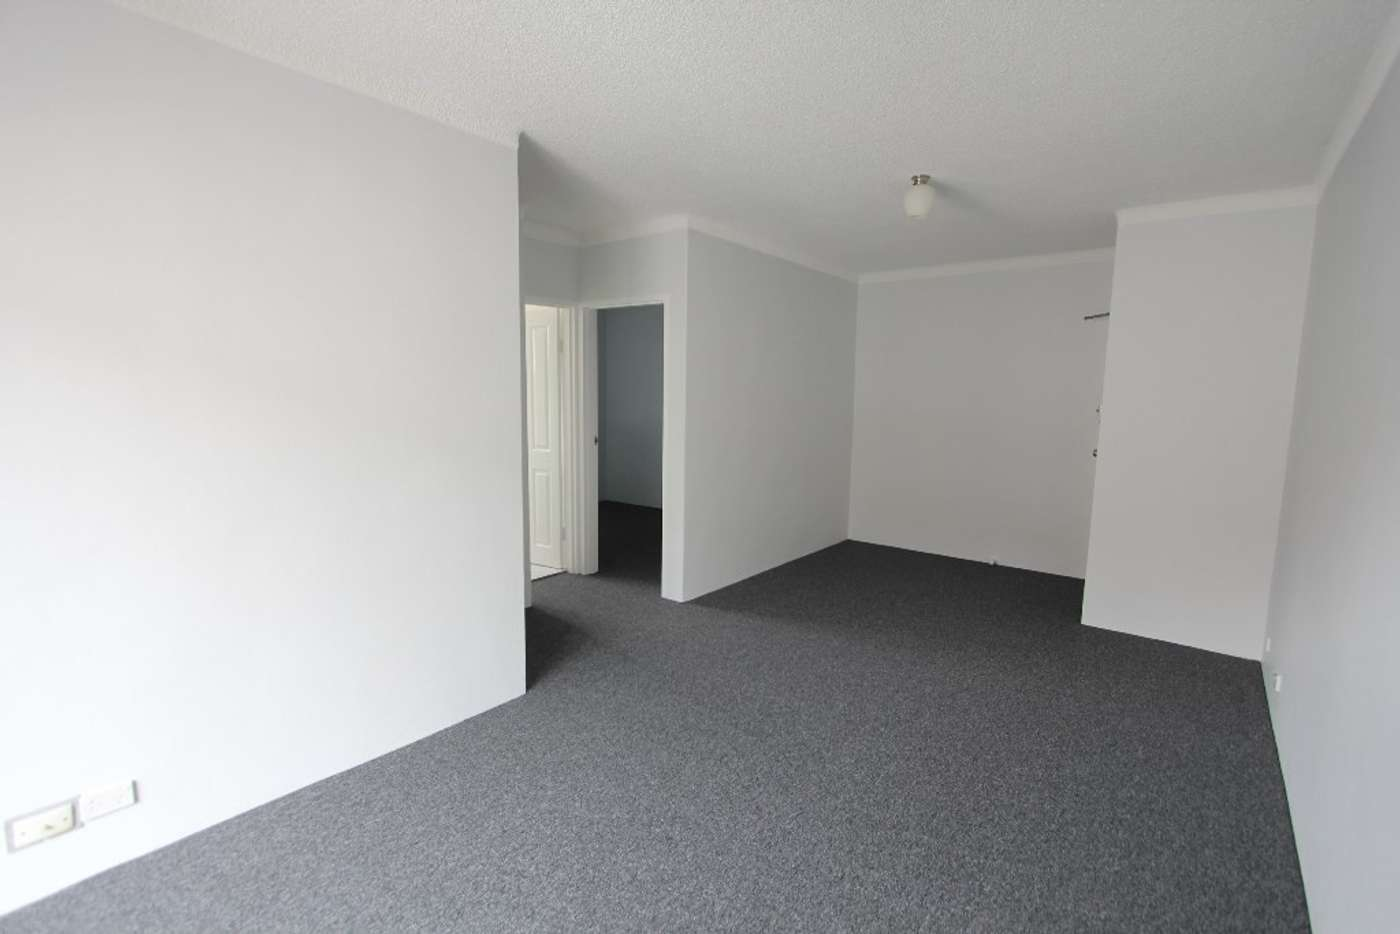 Sixth view of Homely unit listing, 6/2 Forbes Street, Warwick Farm NSW 2170